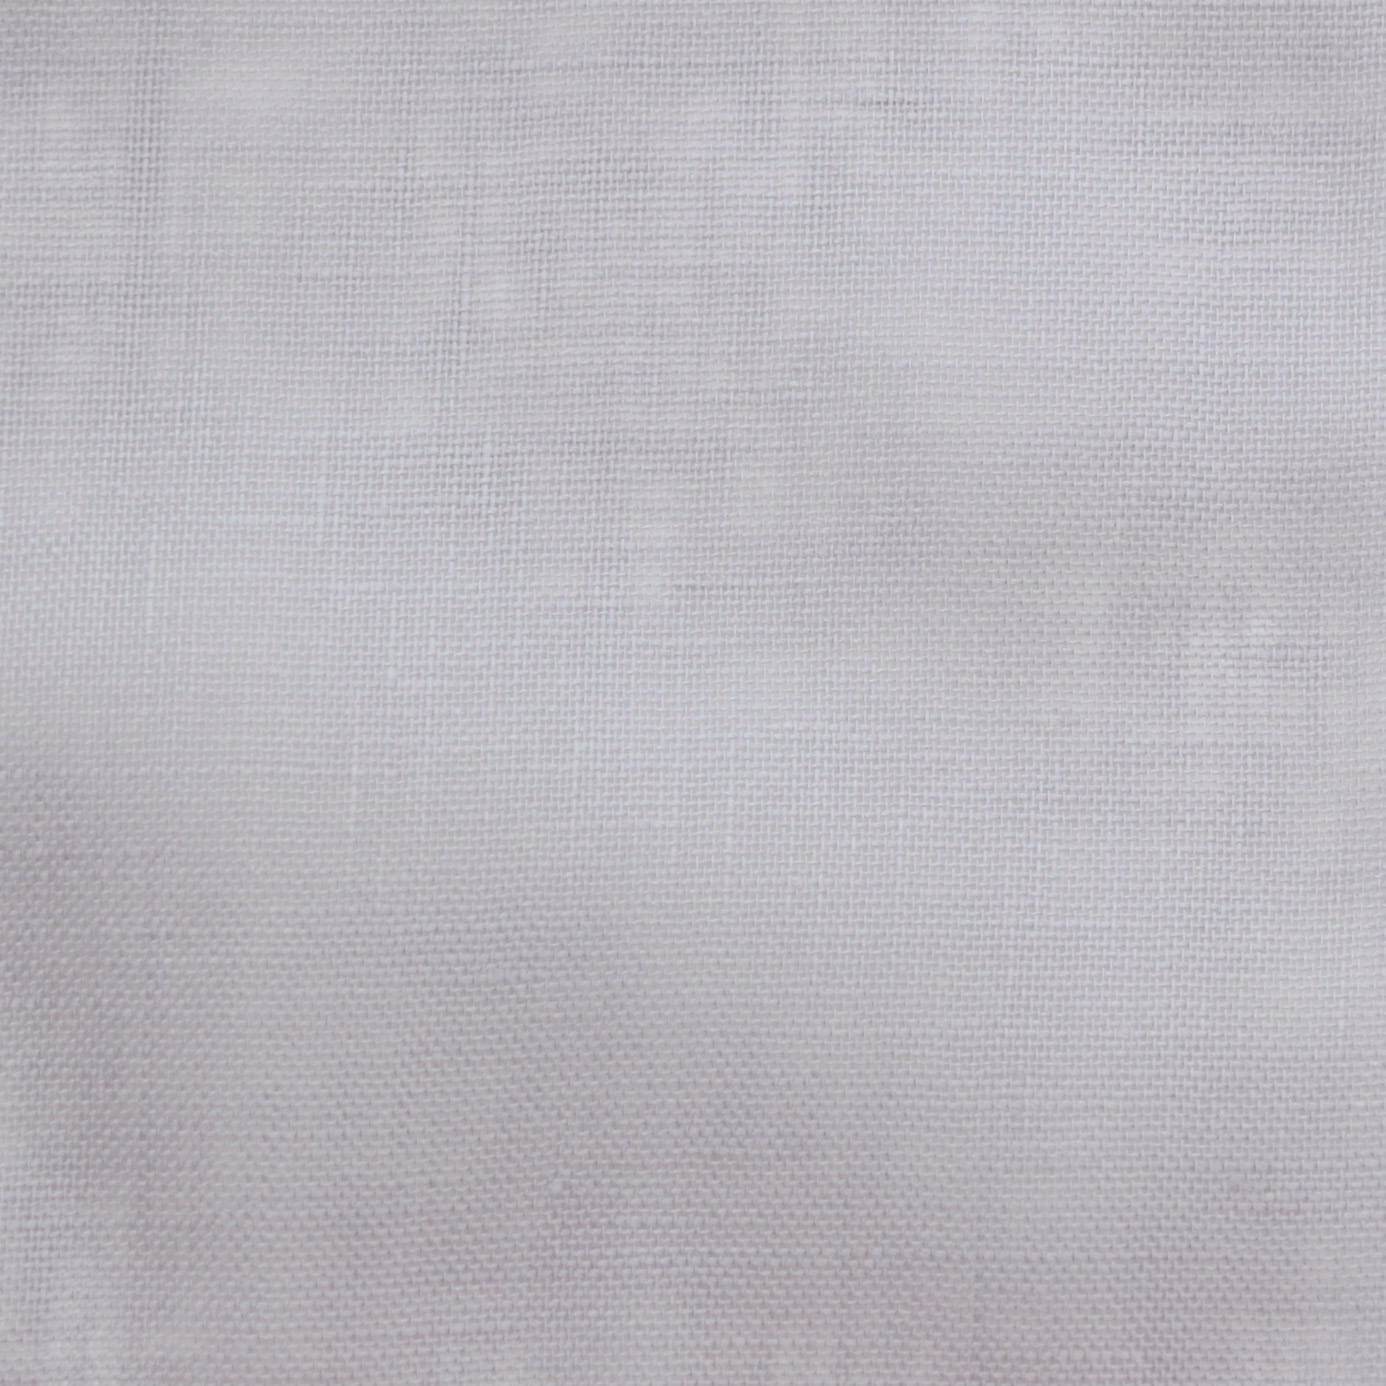 Lightweight Sheers Fabric Parma 243347 Sanderson Lightweight Sheers Fabric Collection